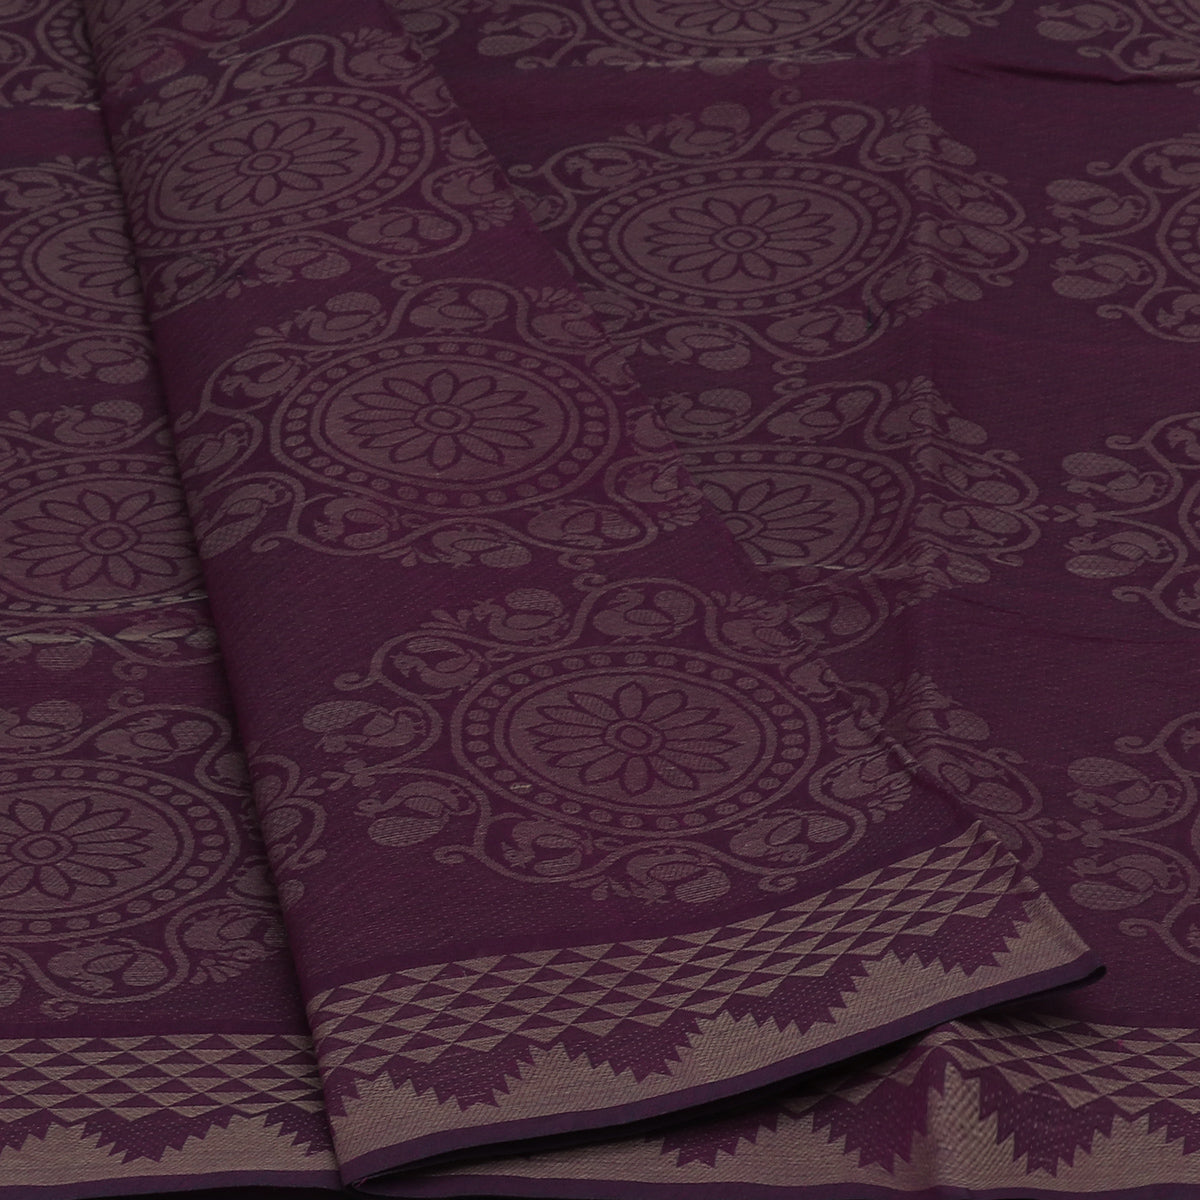 Coimbatore Cotton Saree Onion Pink and Violet Dual shade with Temple border